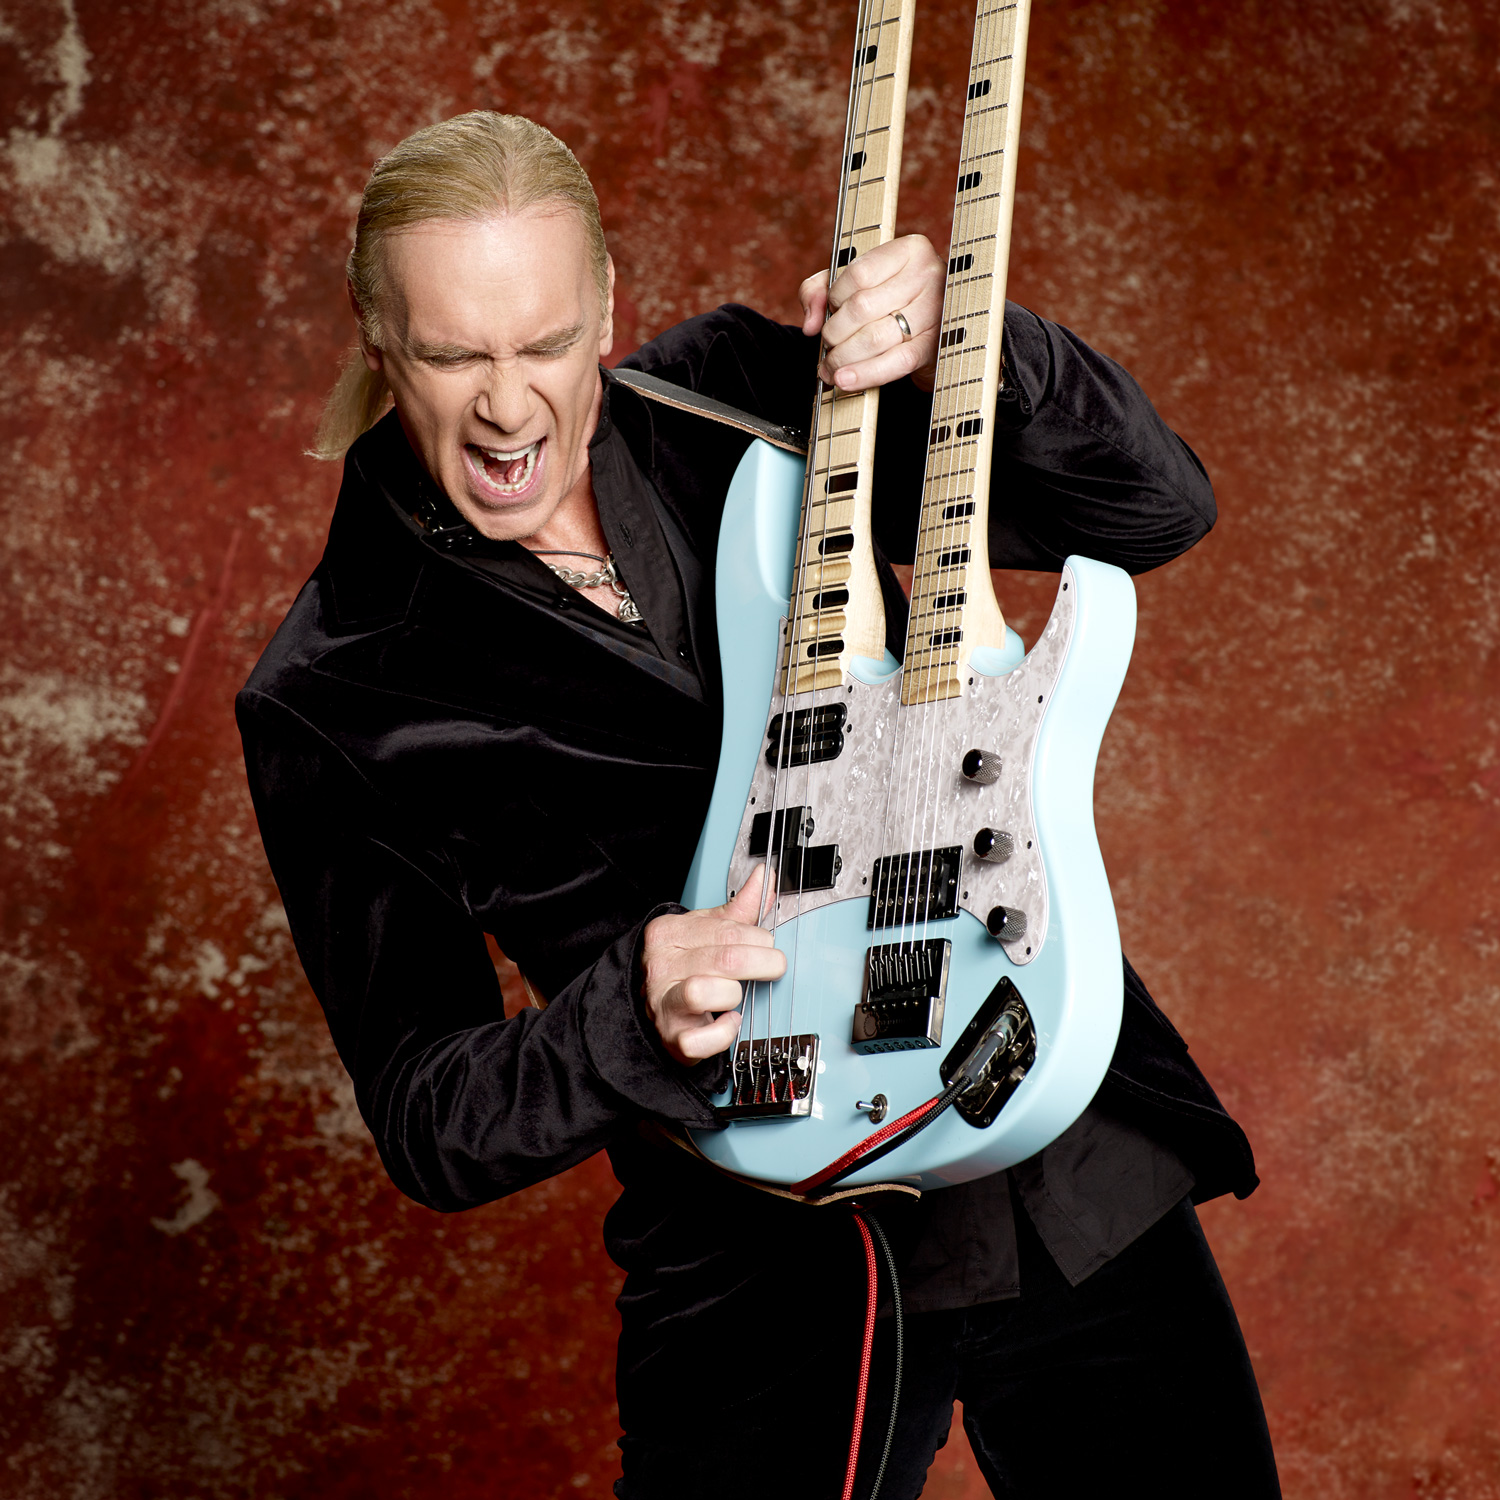 hight resolution of billy sheehan photo by larry dimarzio